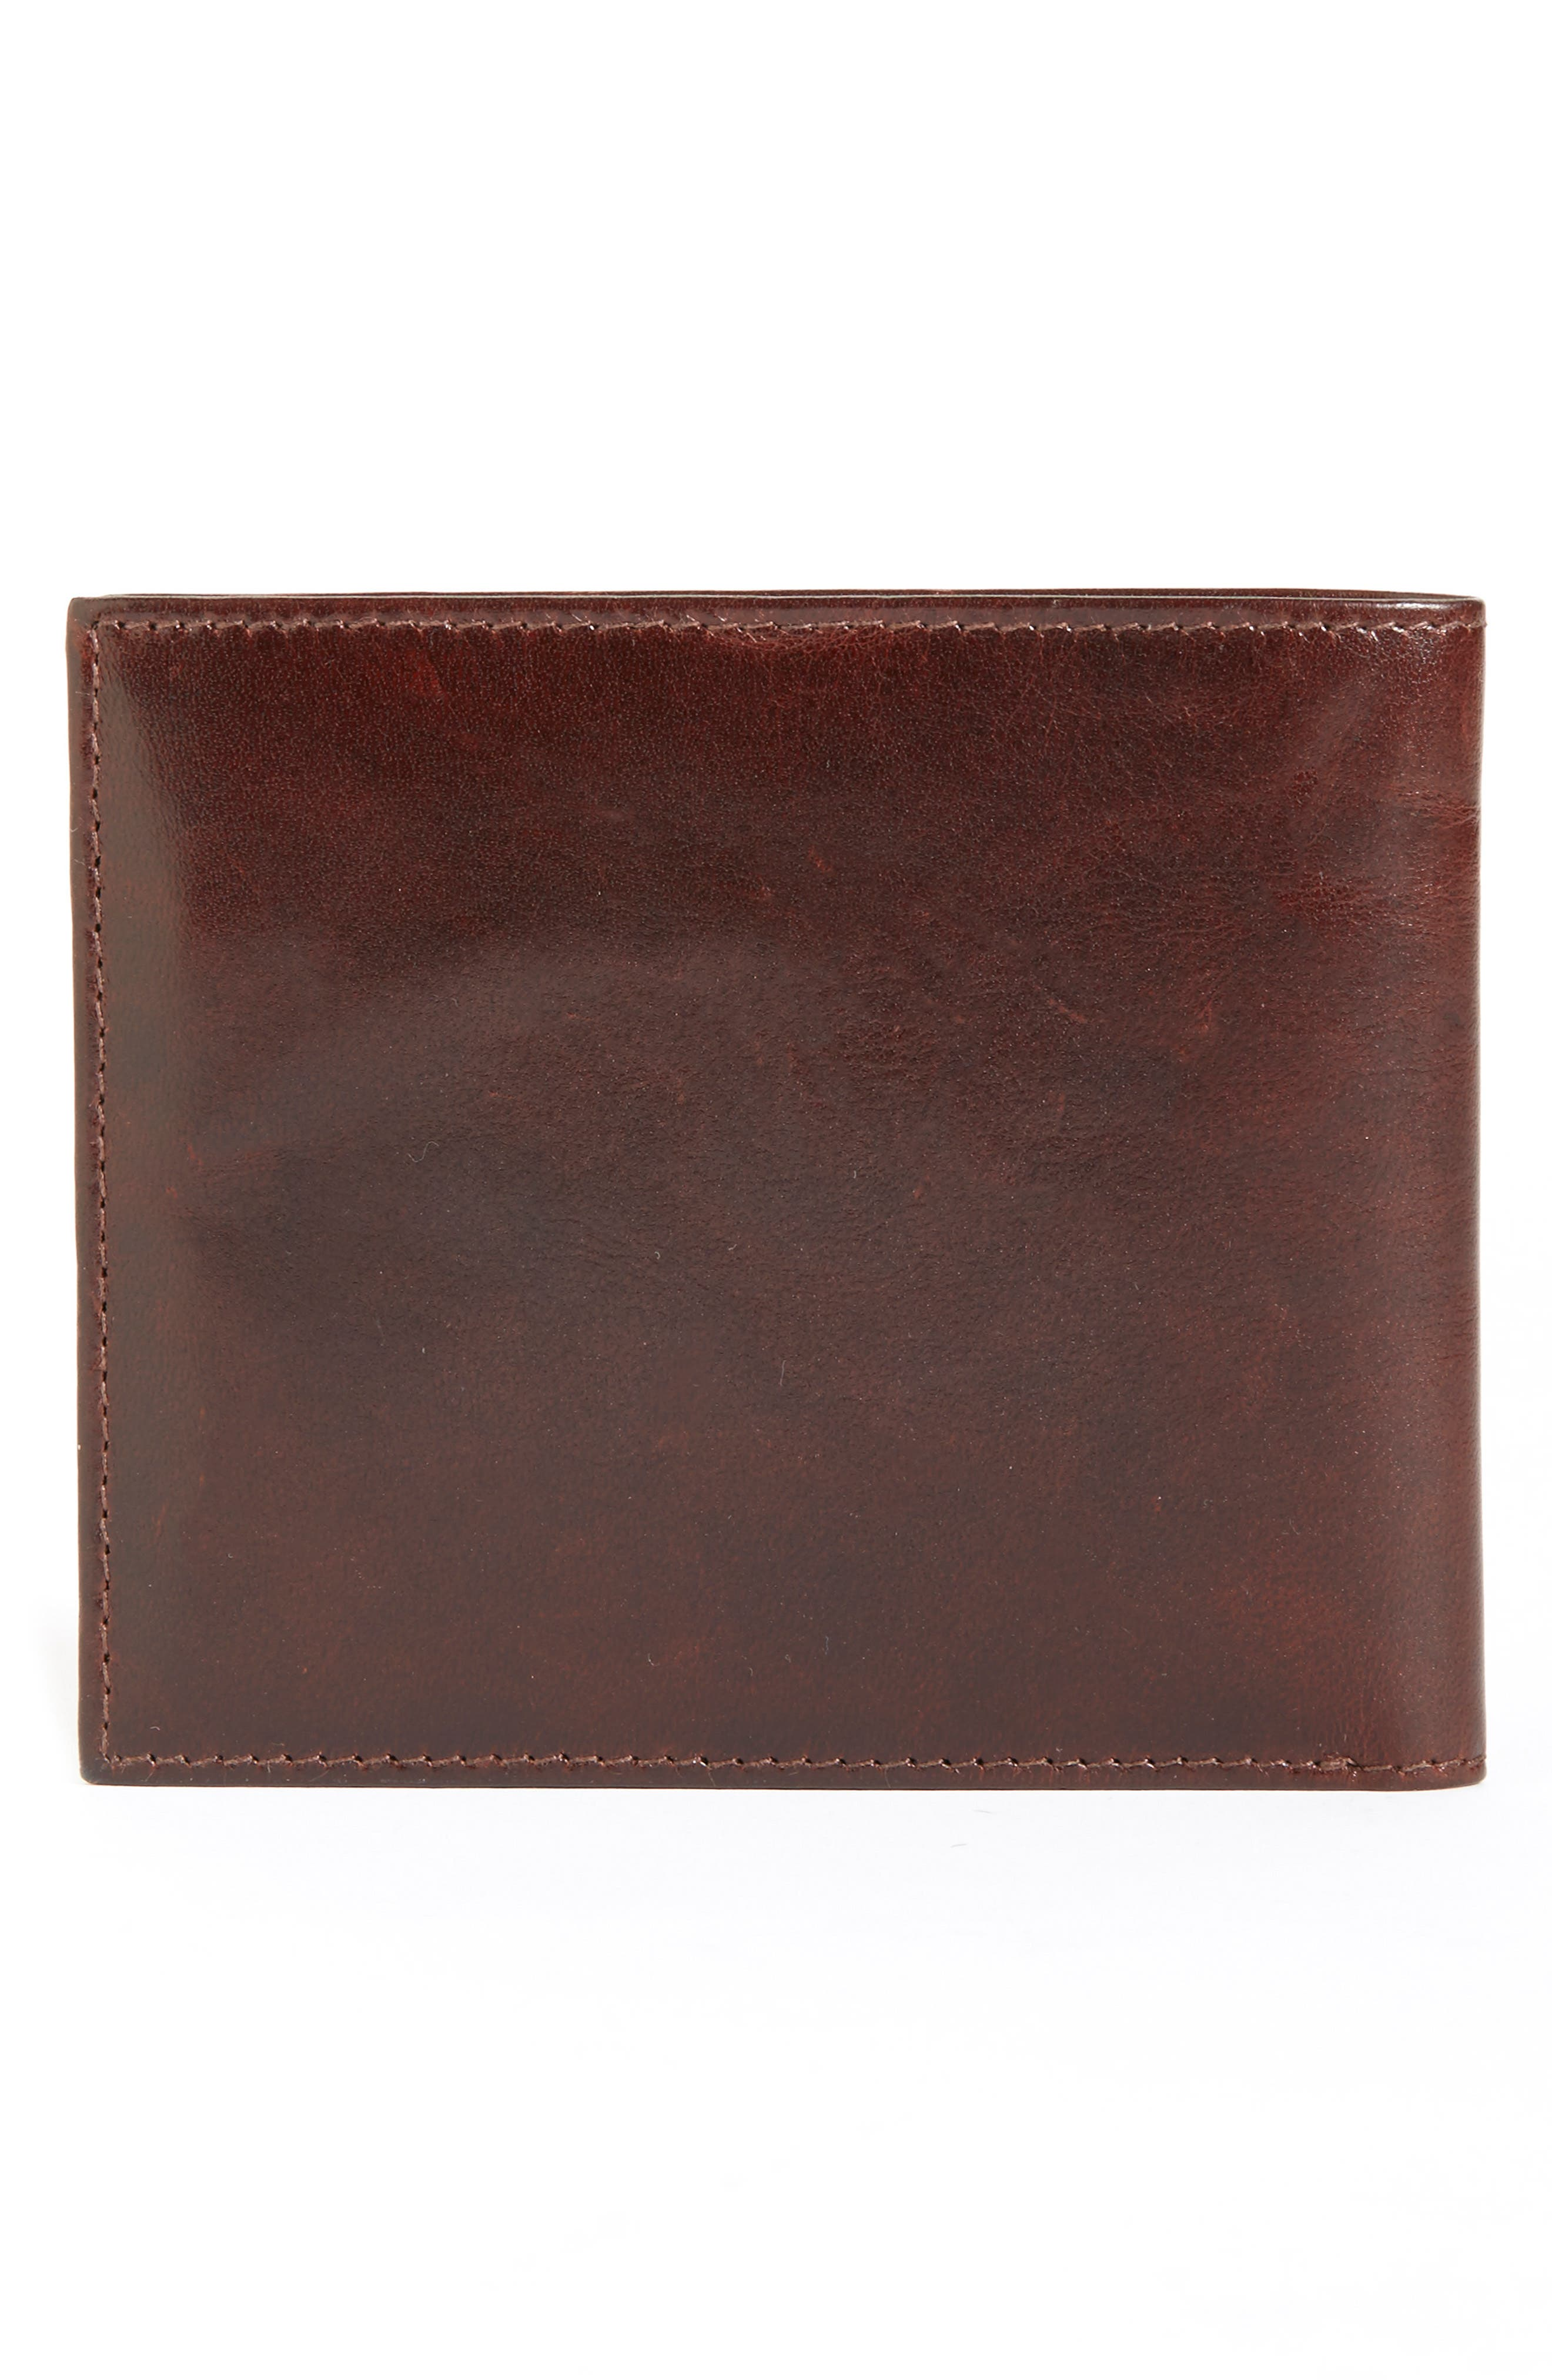 Carouse Leather Wallet,                         Main,                         color, 217